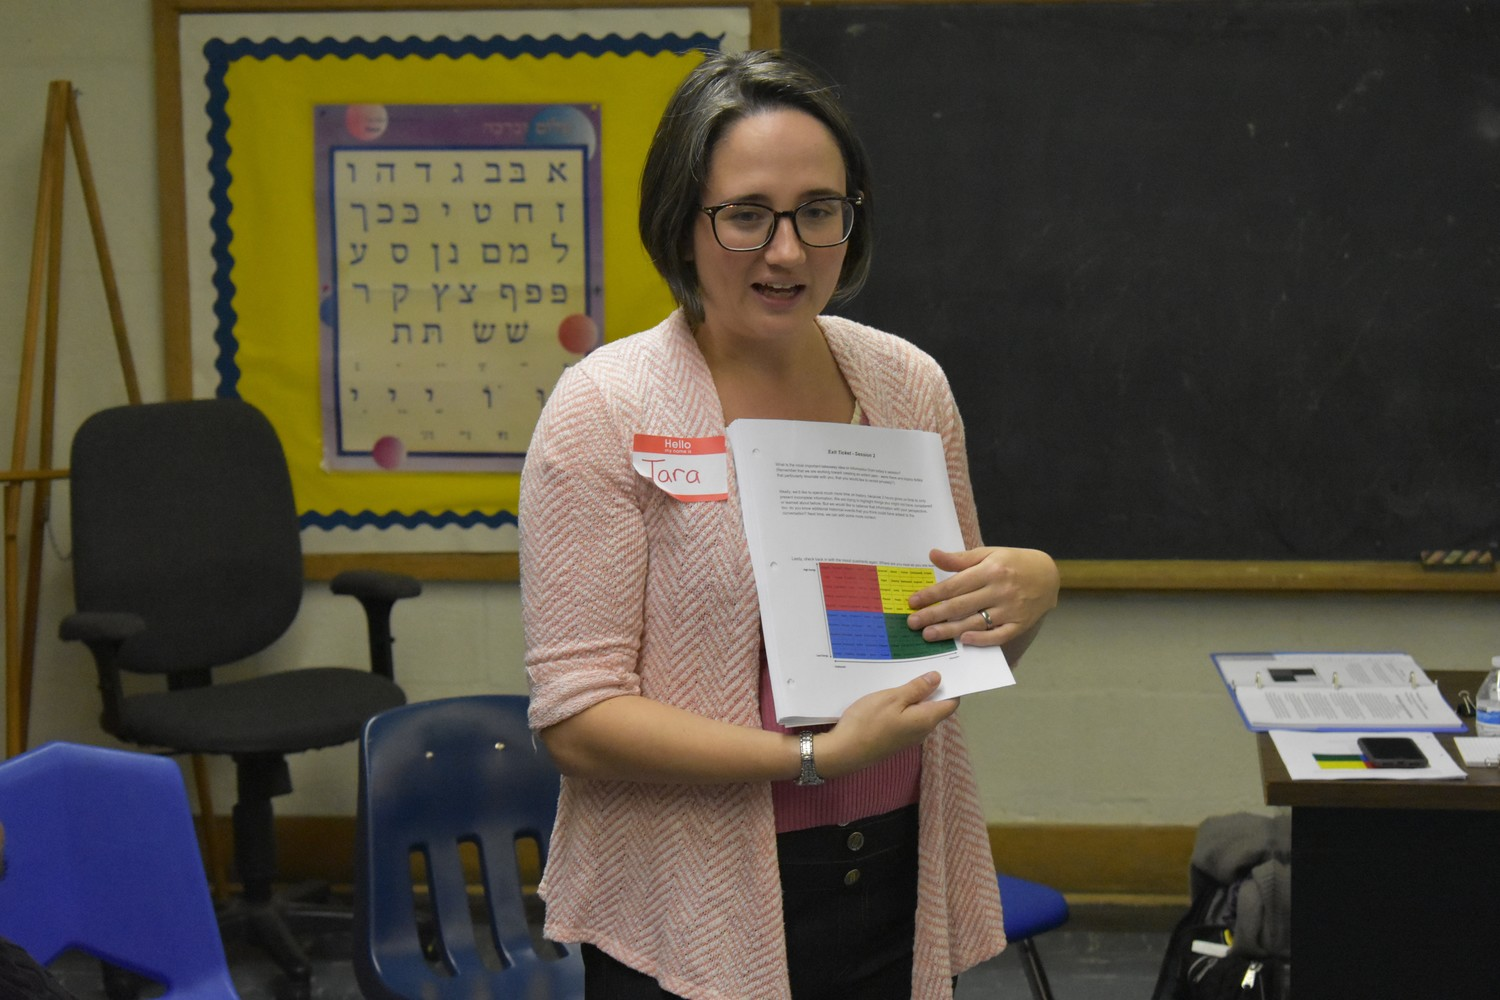 Tara Brancato, an Anti-Racism Project facilitator, asked attendees at last year's session to record how they felt about delving into the history of racism.